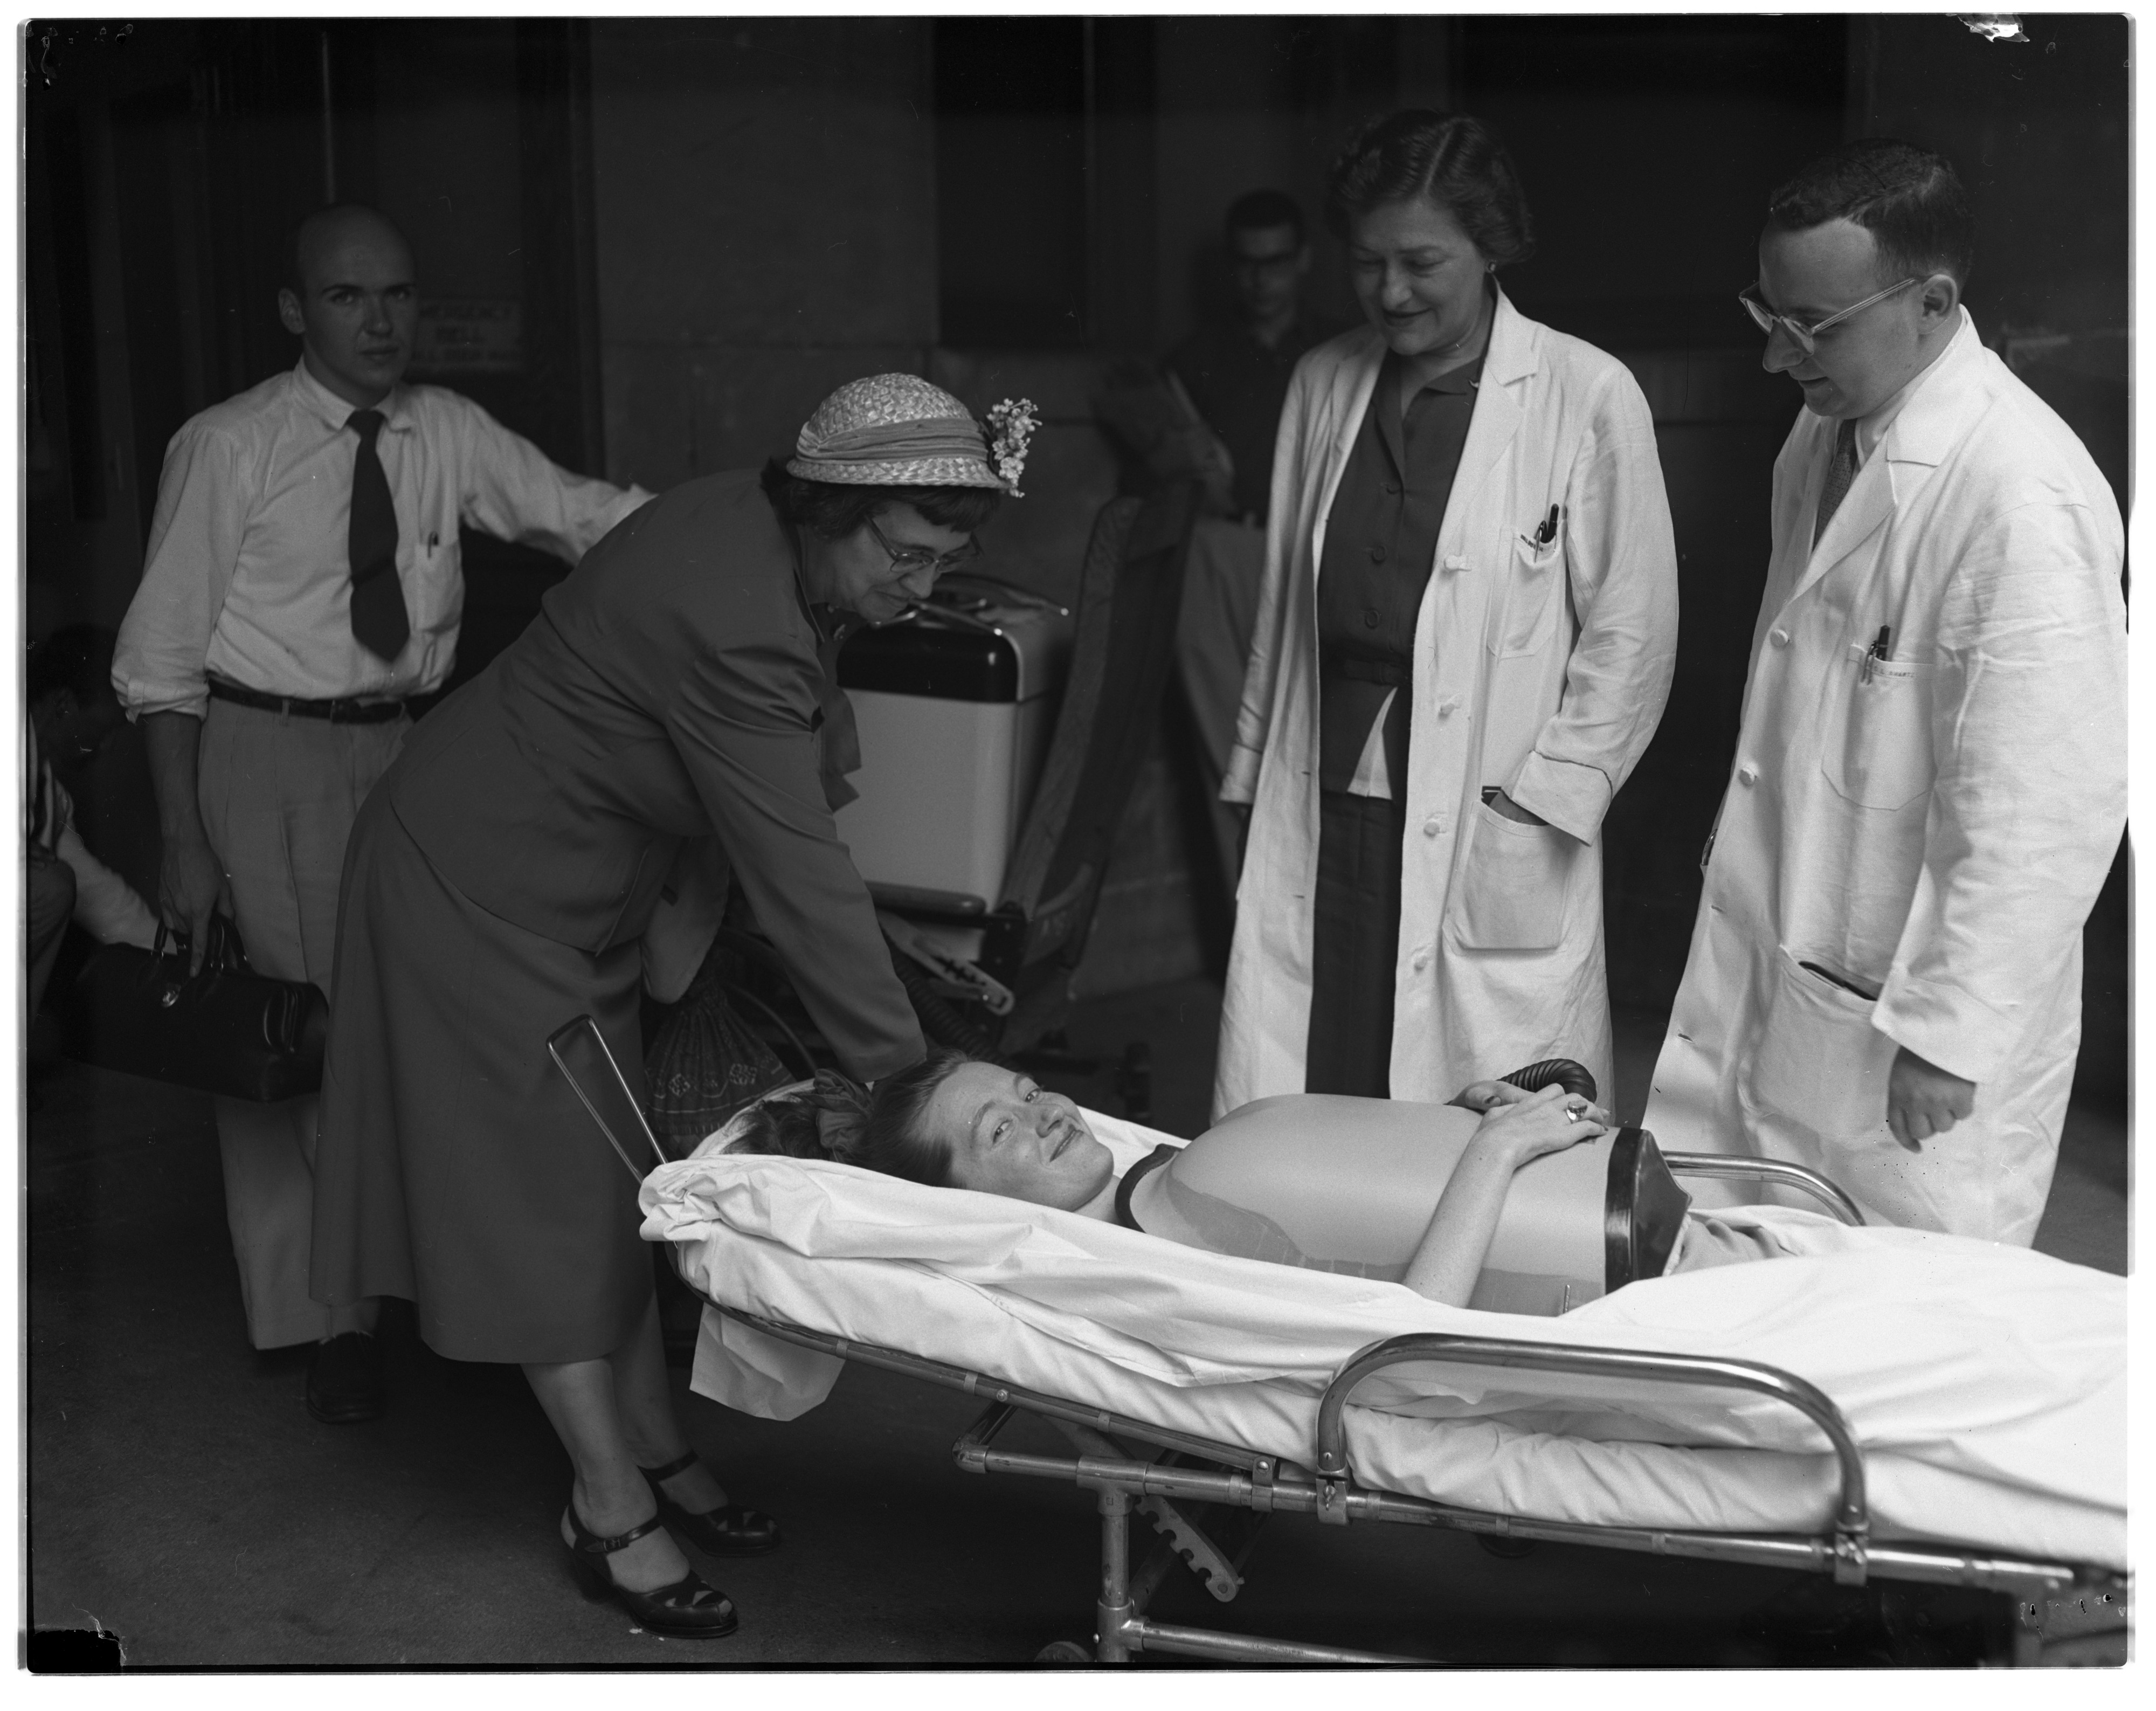 Marjorie Willock Arrives for Polio Respiratory Treatment at University Hospital, August 1953 image